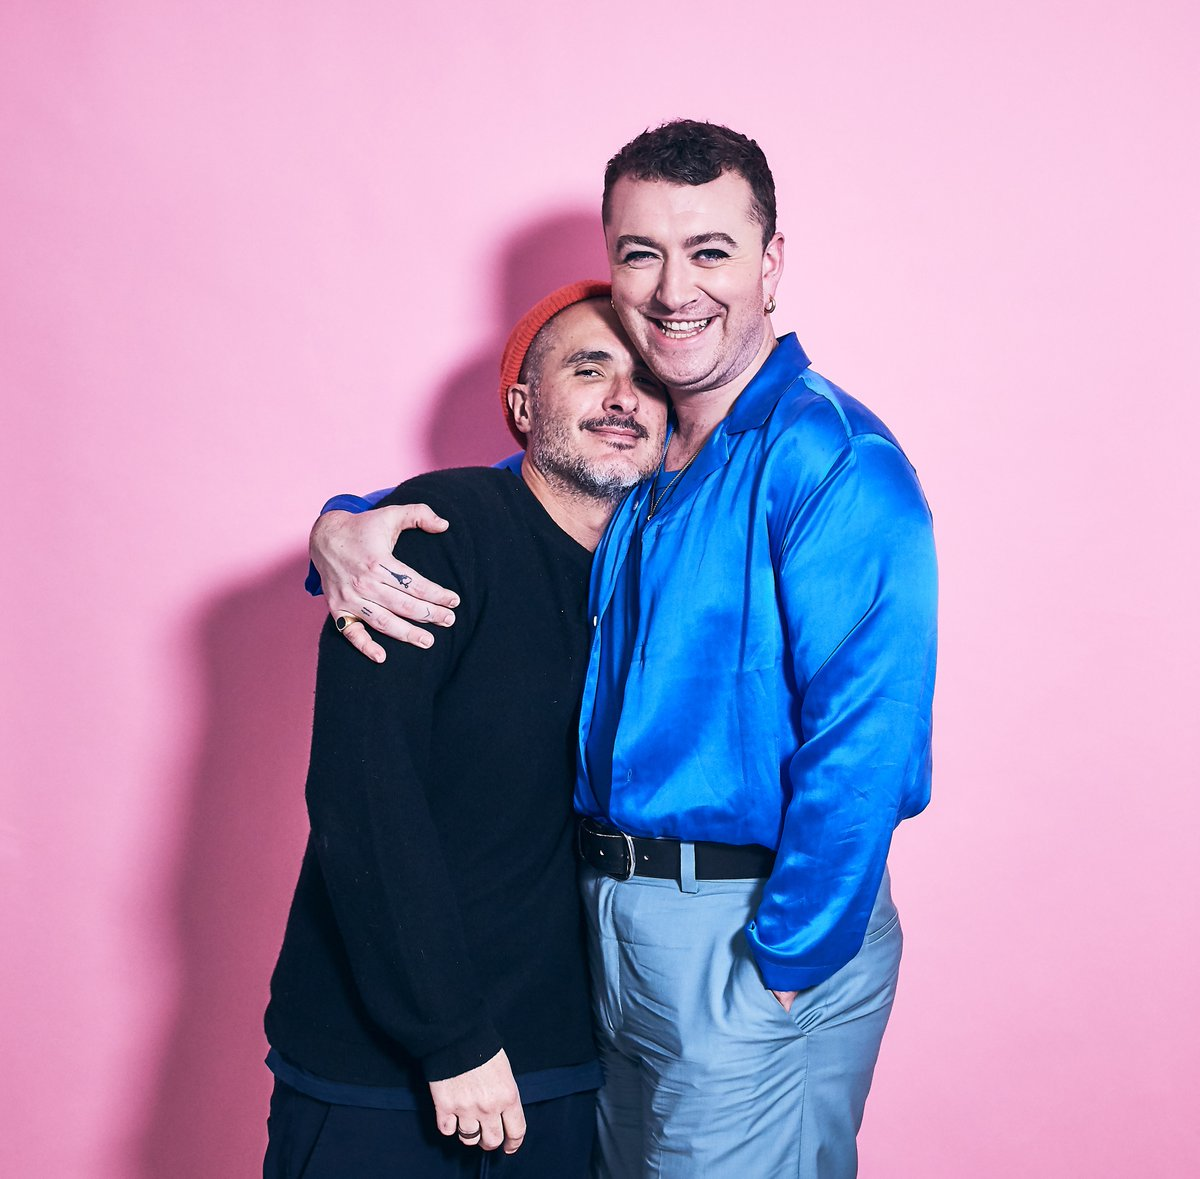 .@samsmith's #ToDieFor will be out May 1st. Pre-add the album on @AppleMusic + watch the artist's #NewMusicDaily interview with @zanelowe now. ➡️